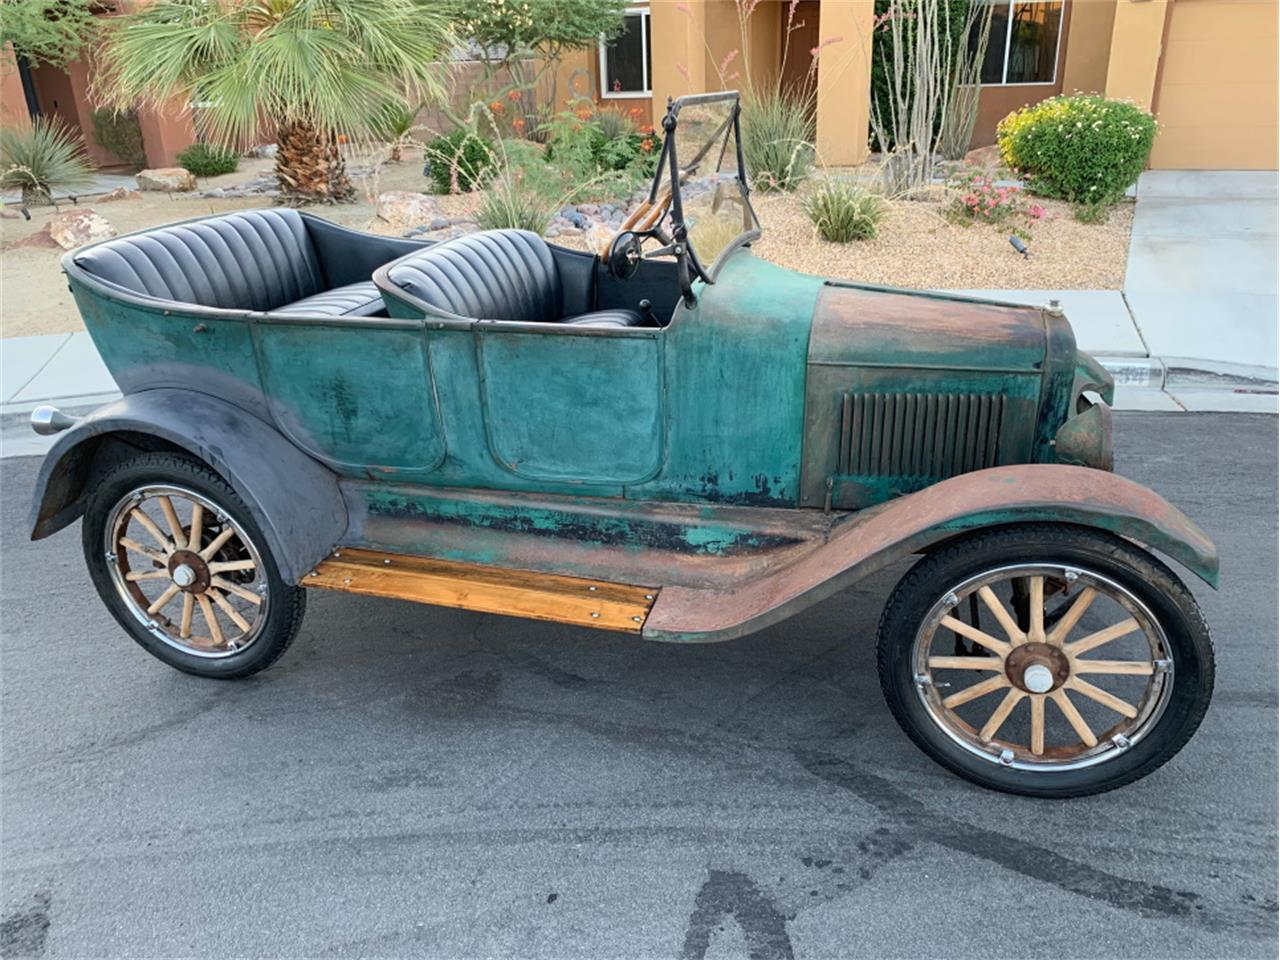 For Sale: 1922 Overland Model 4 Touring in Indian Wells, California